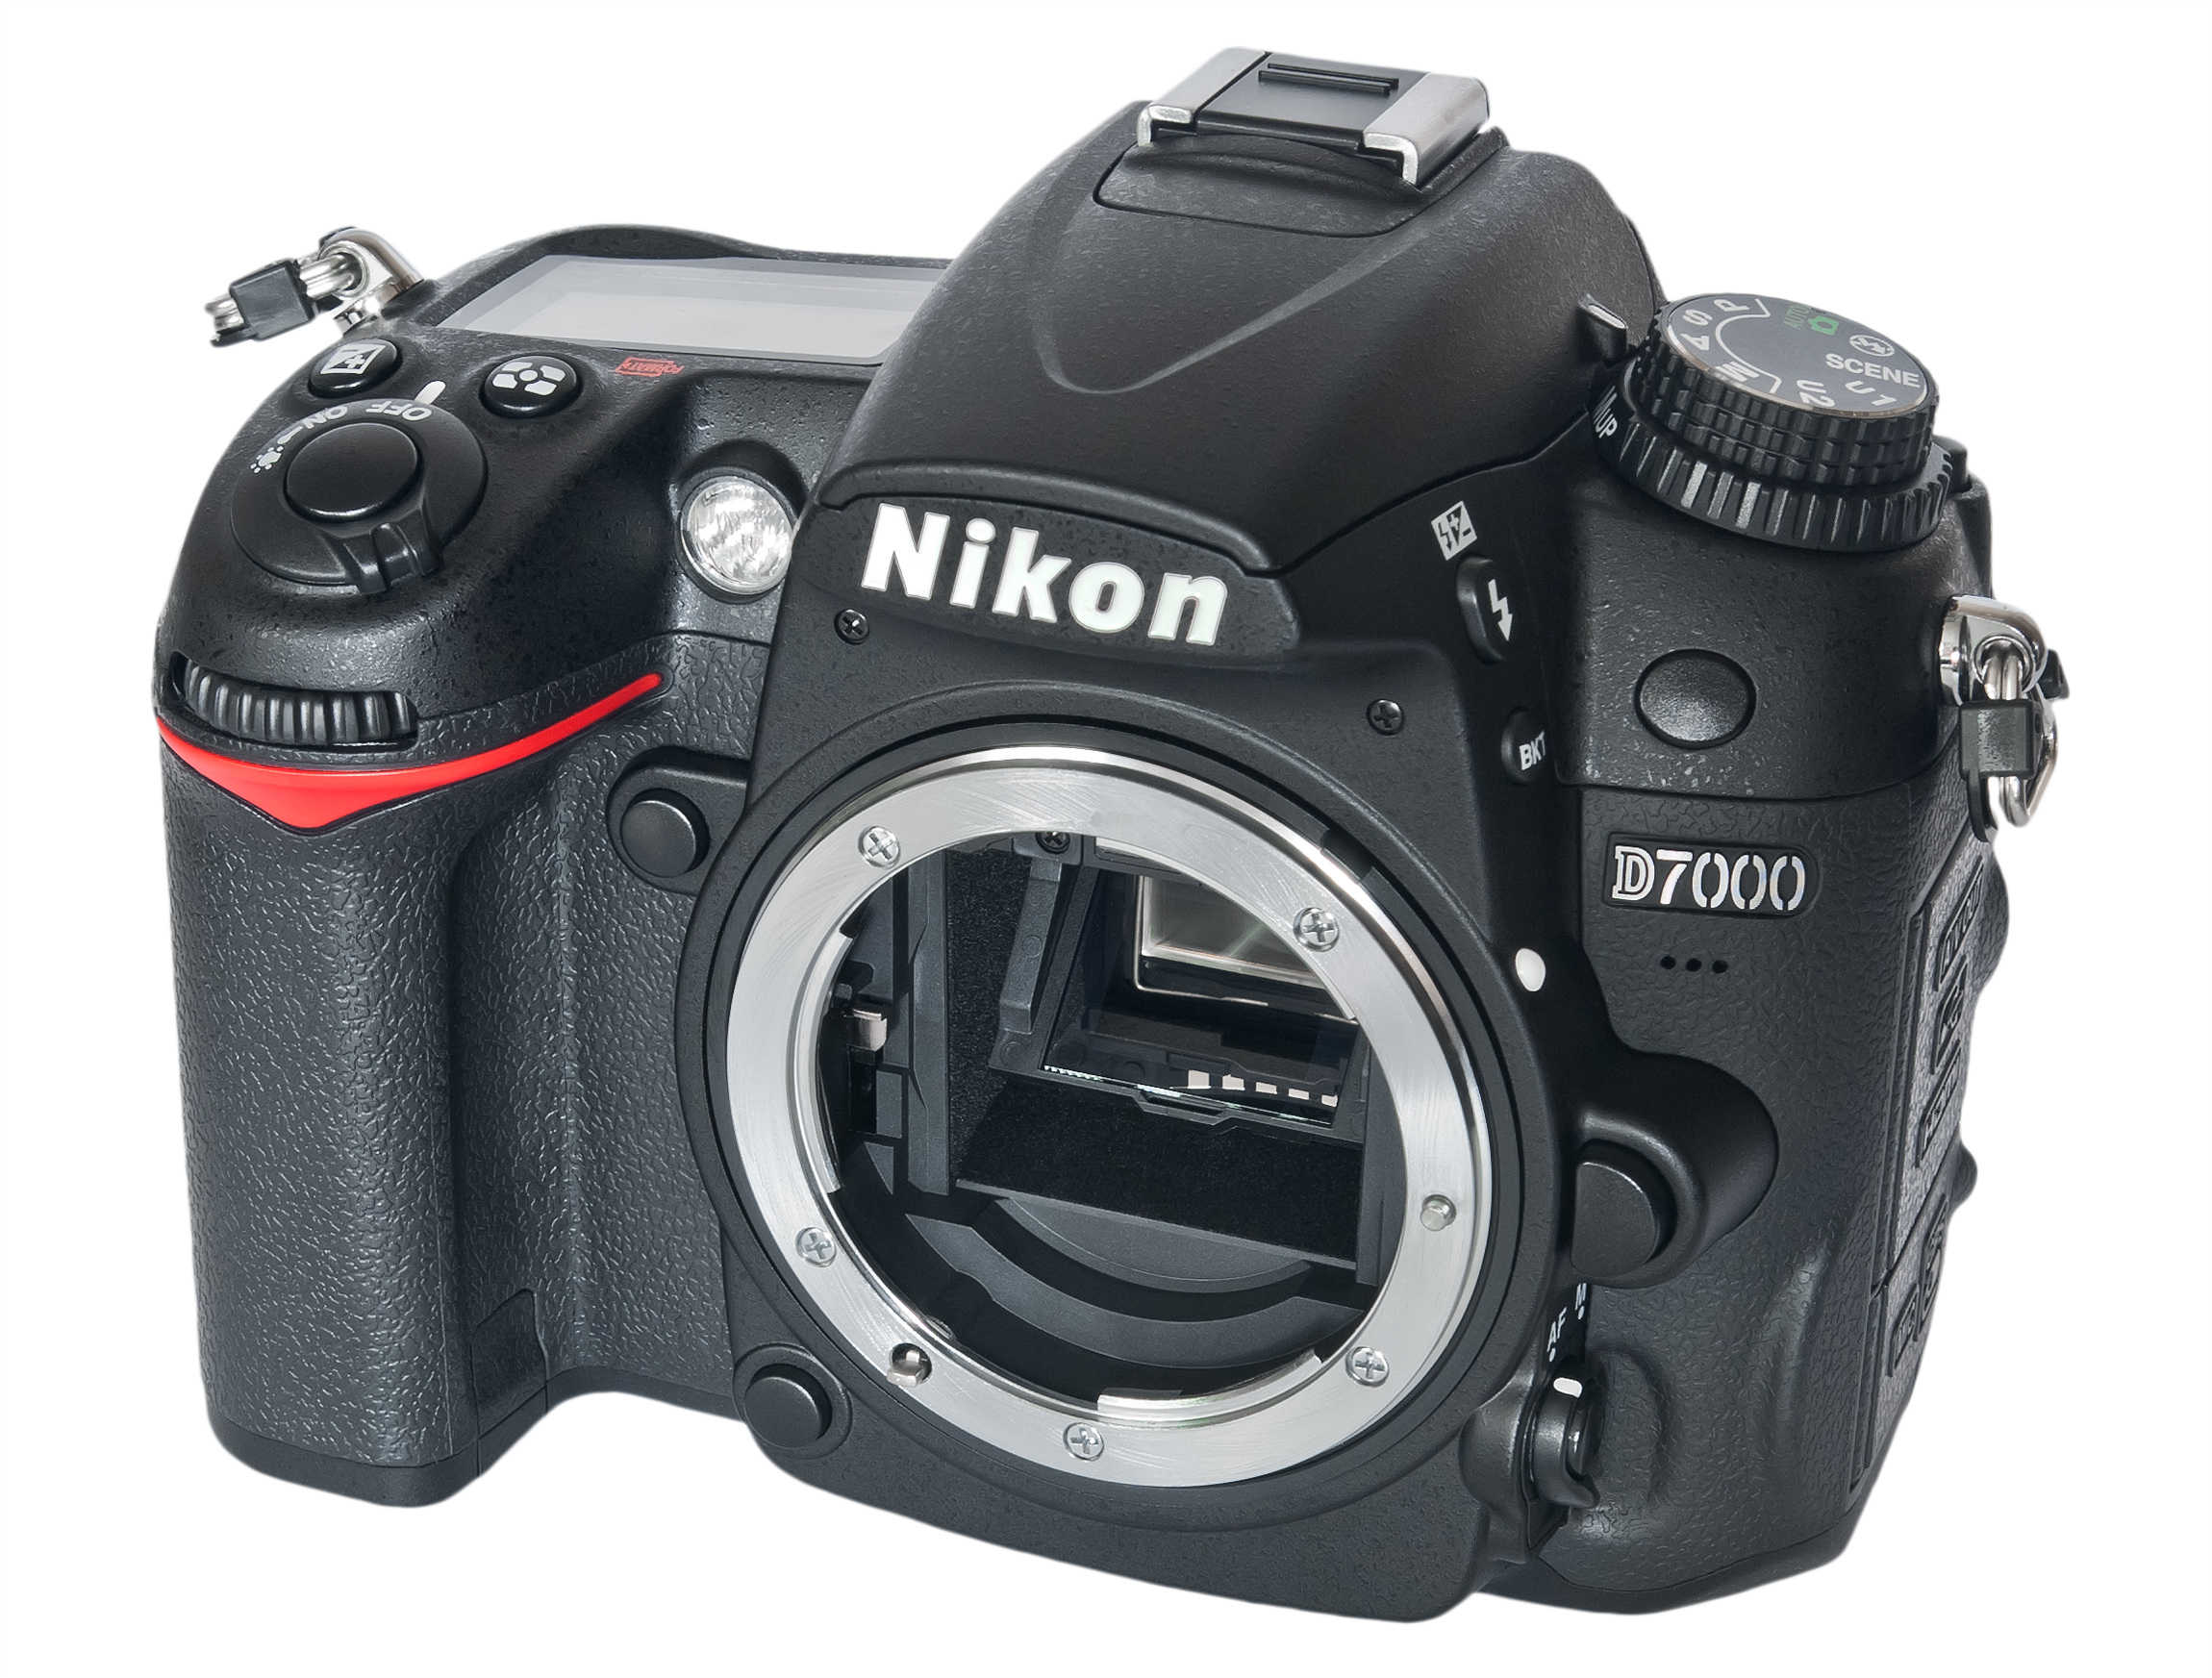 Troubleshooting Nikon D7000 focus issues and potential solutions